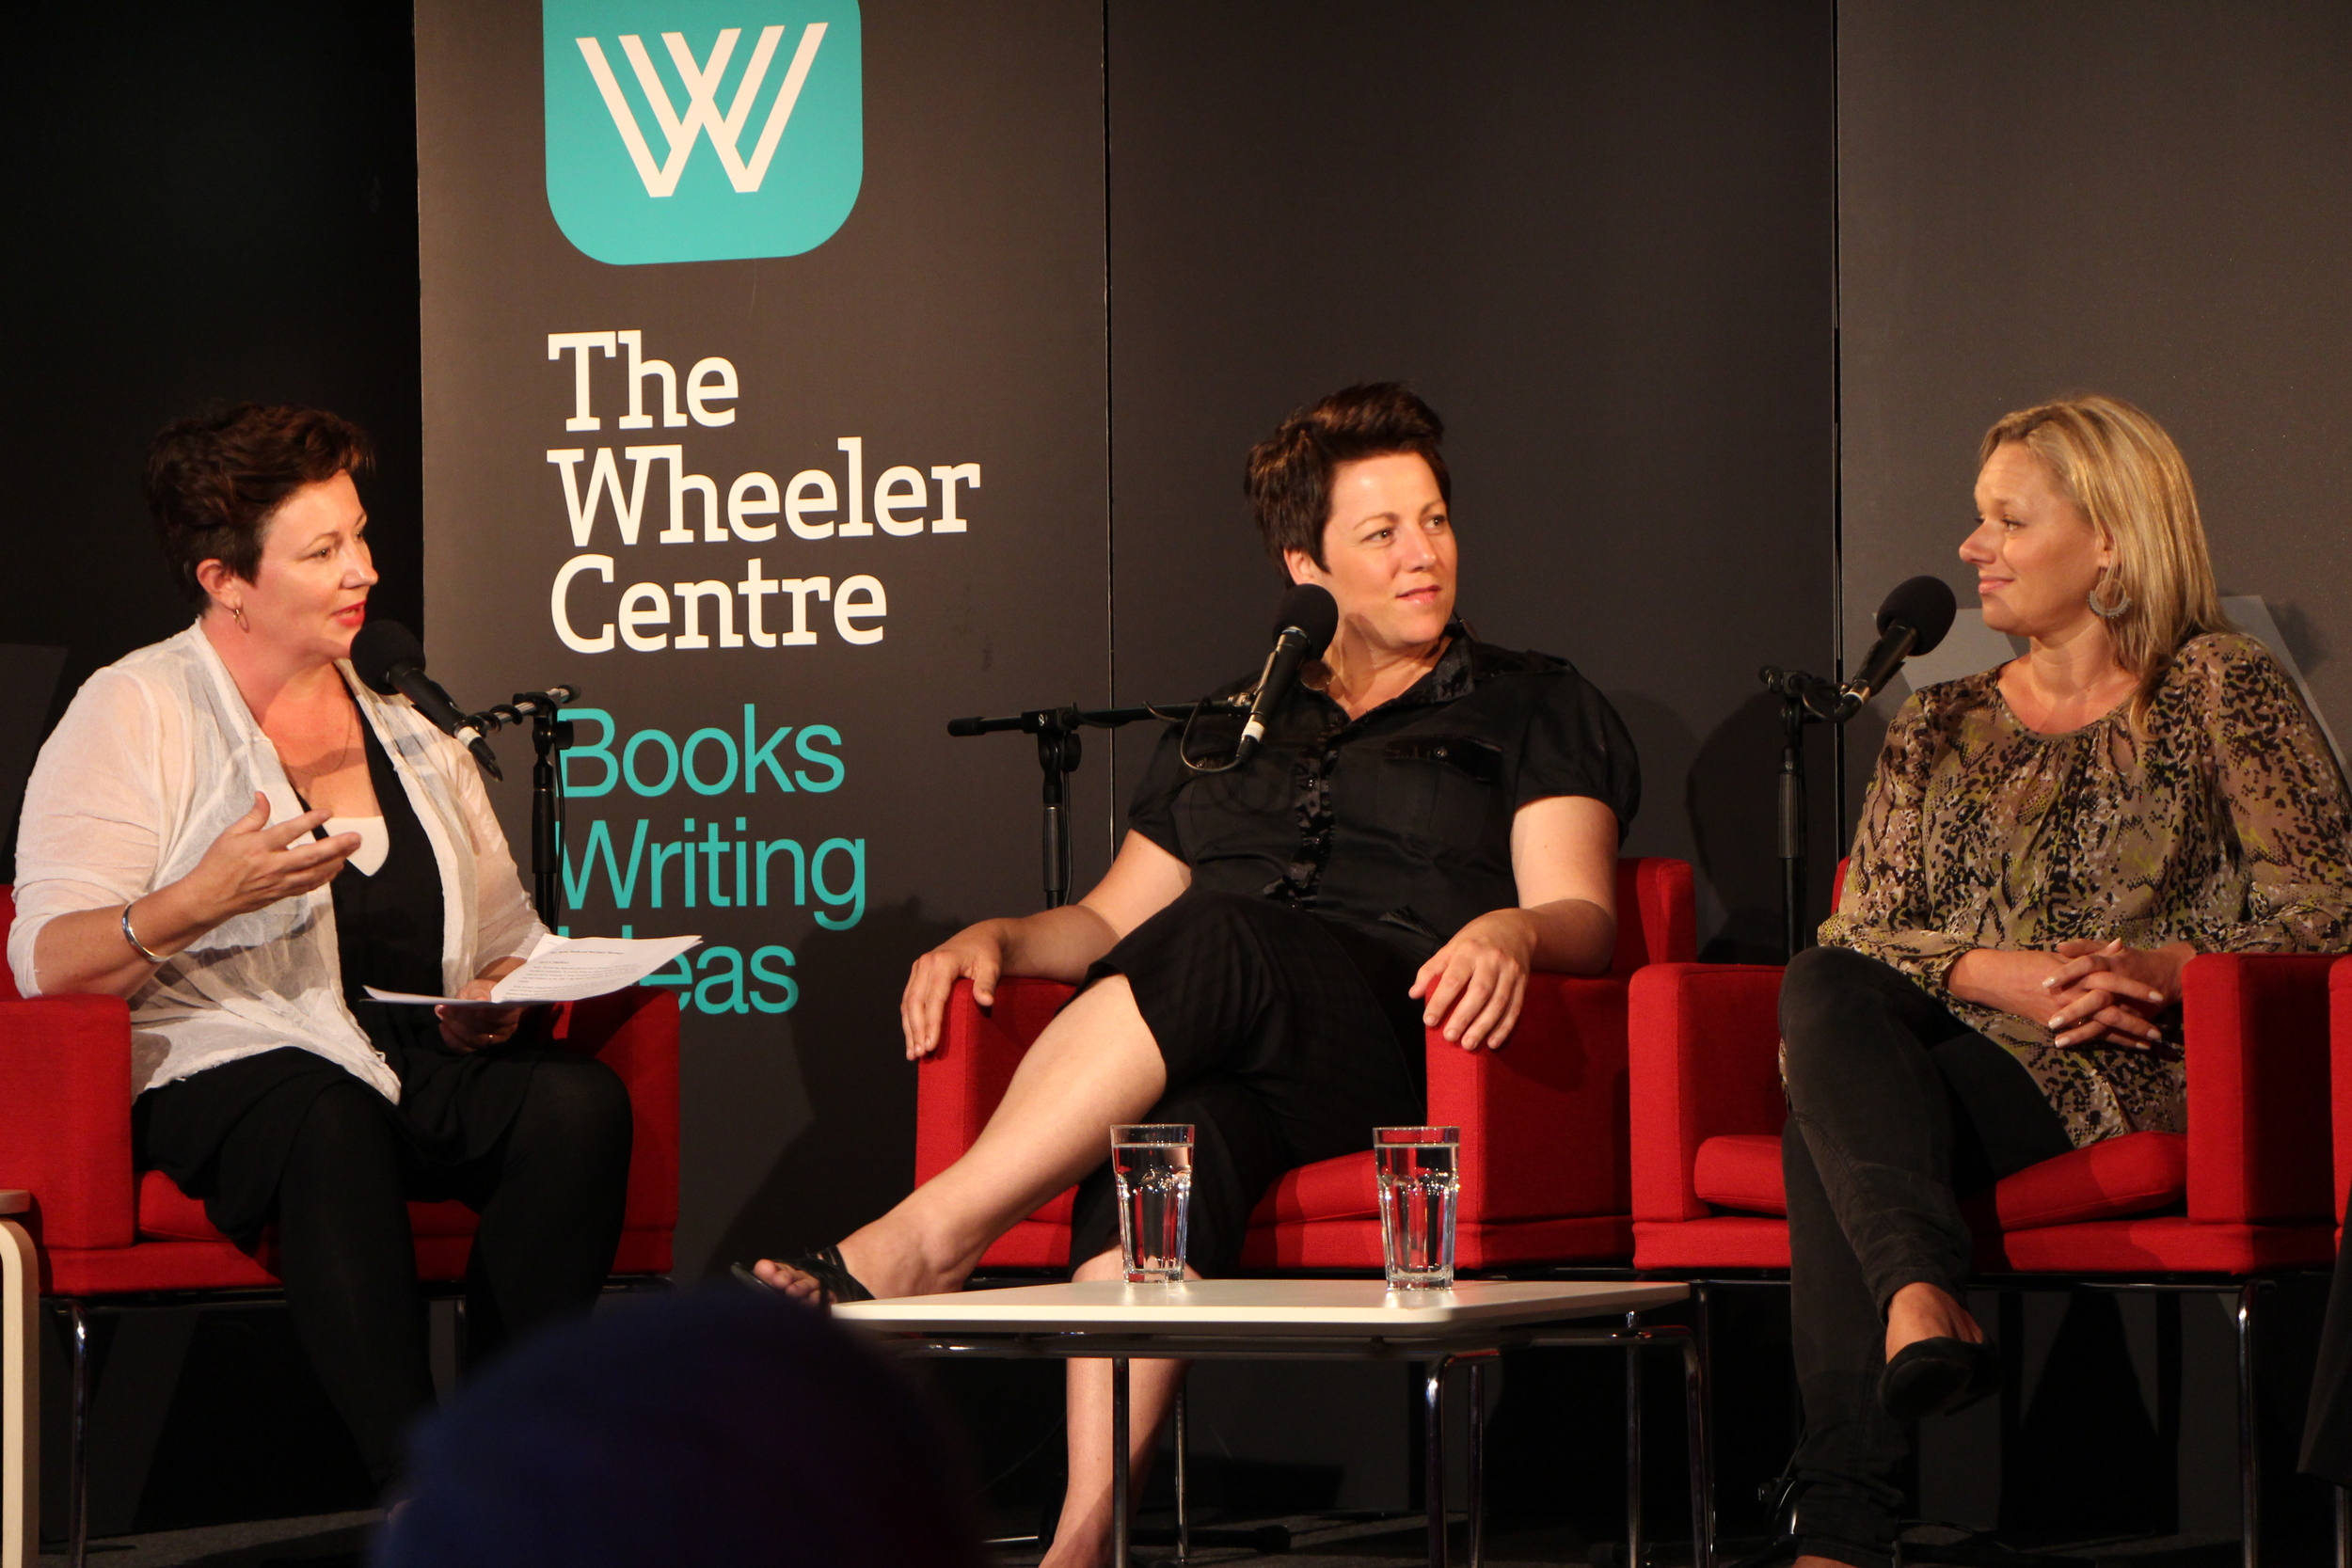 Sabina on a discussion panel at The Wheeler Centre.